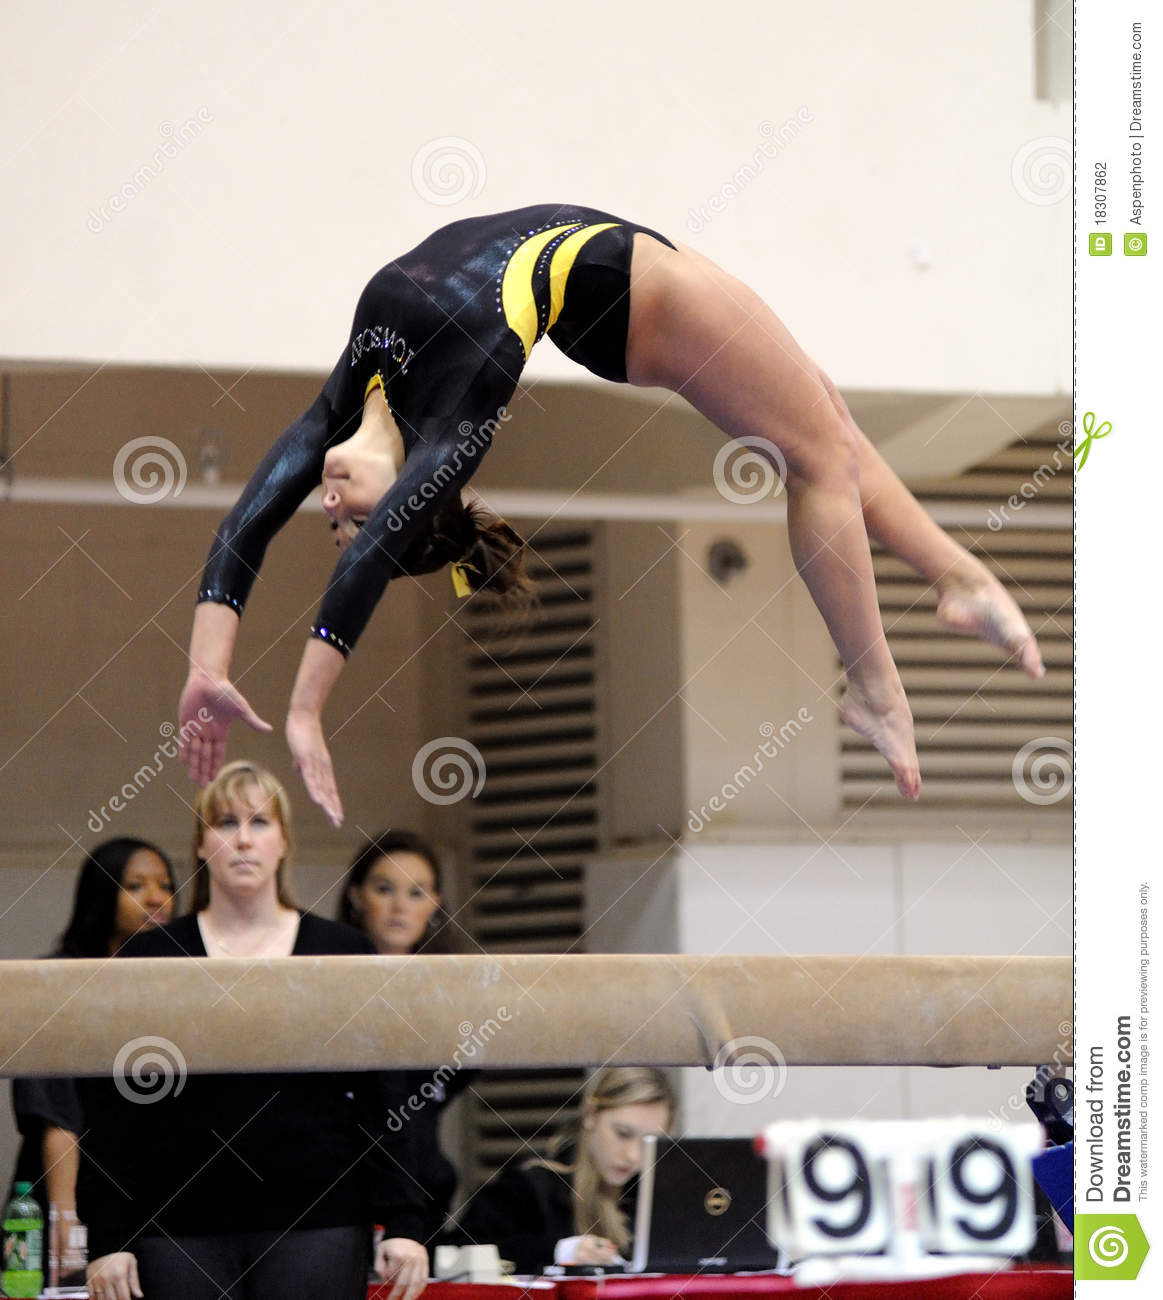 Kacy Catanzaro Balance Beam Back Flip Editorial Photography Image 18307862